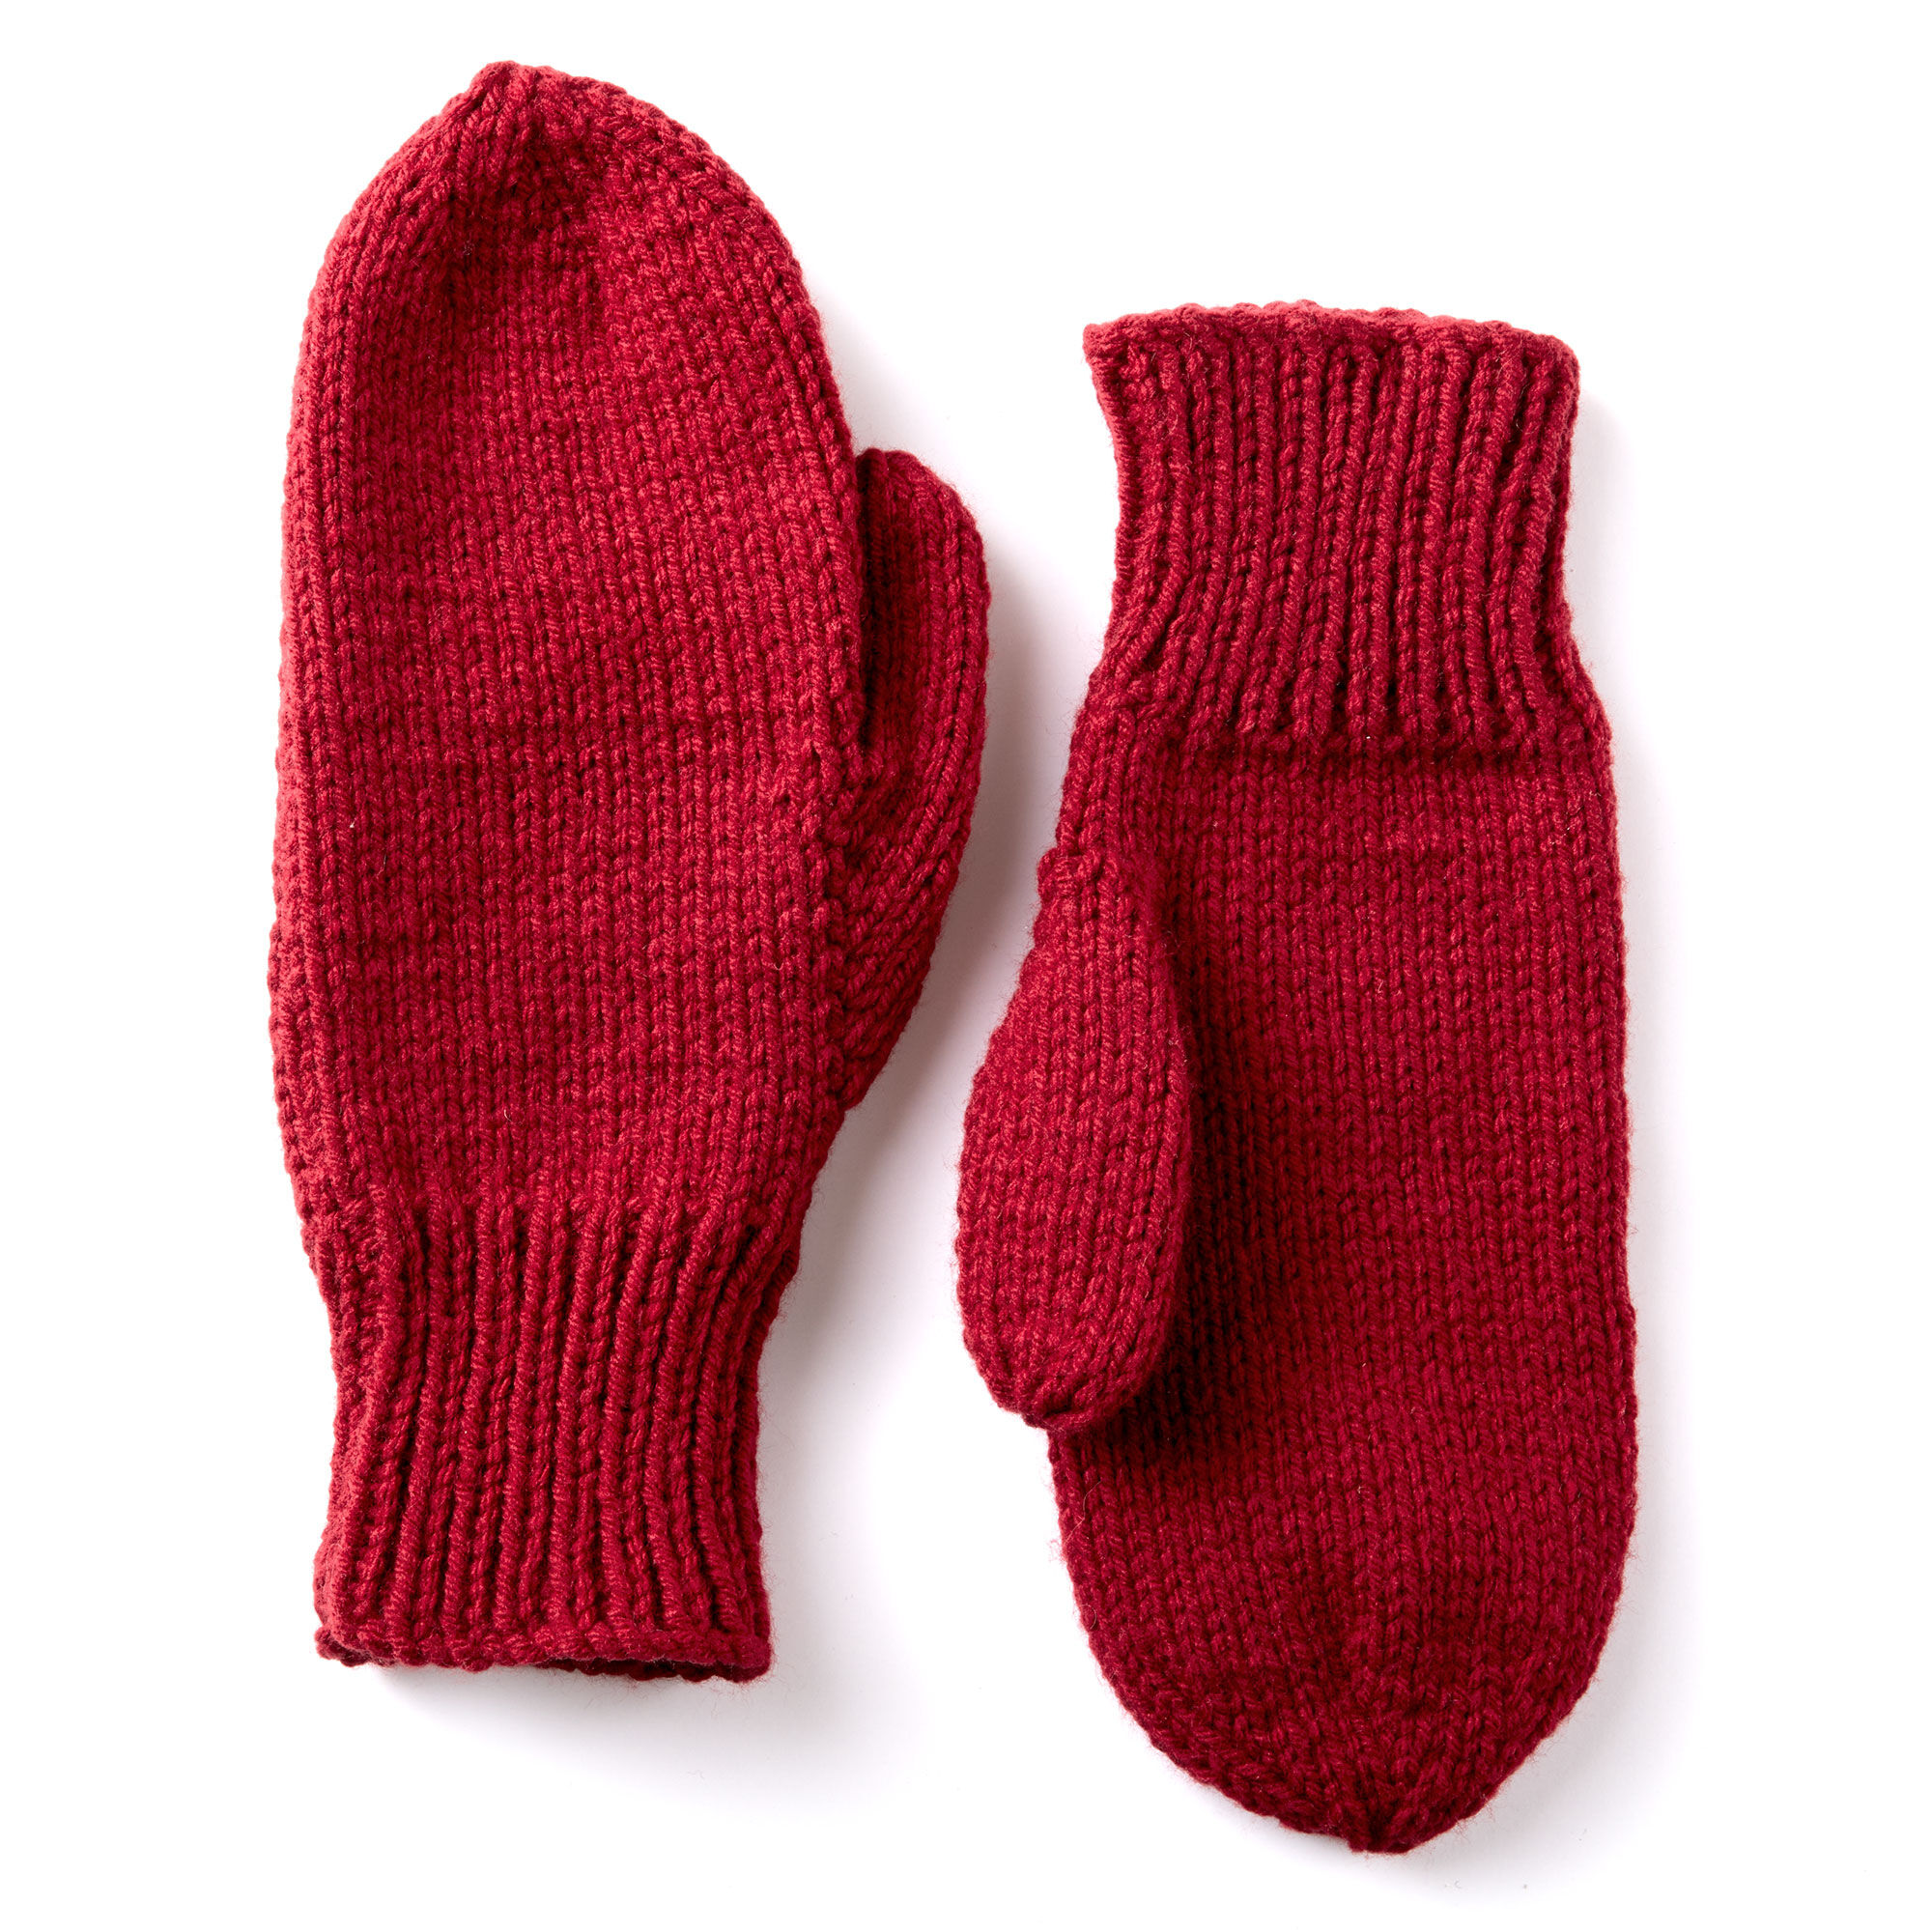 Caron Basic Family Knit Mittens Yarnspirations